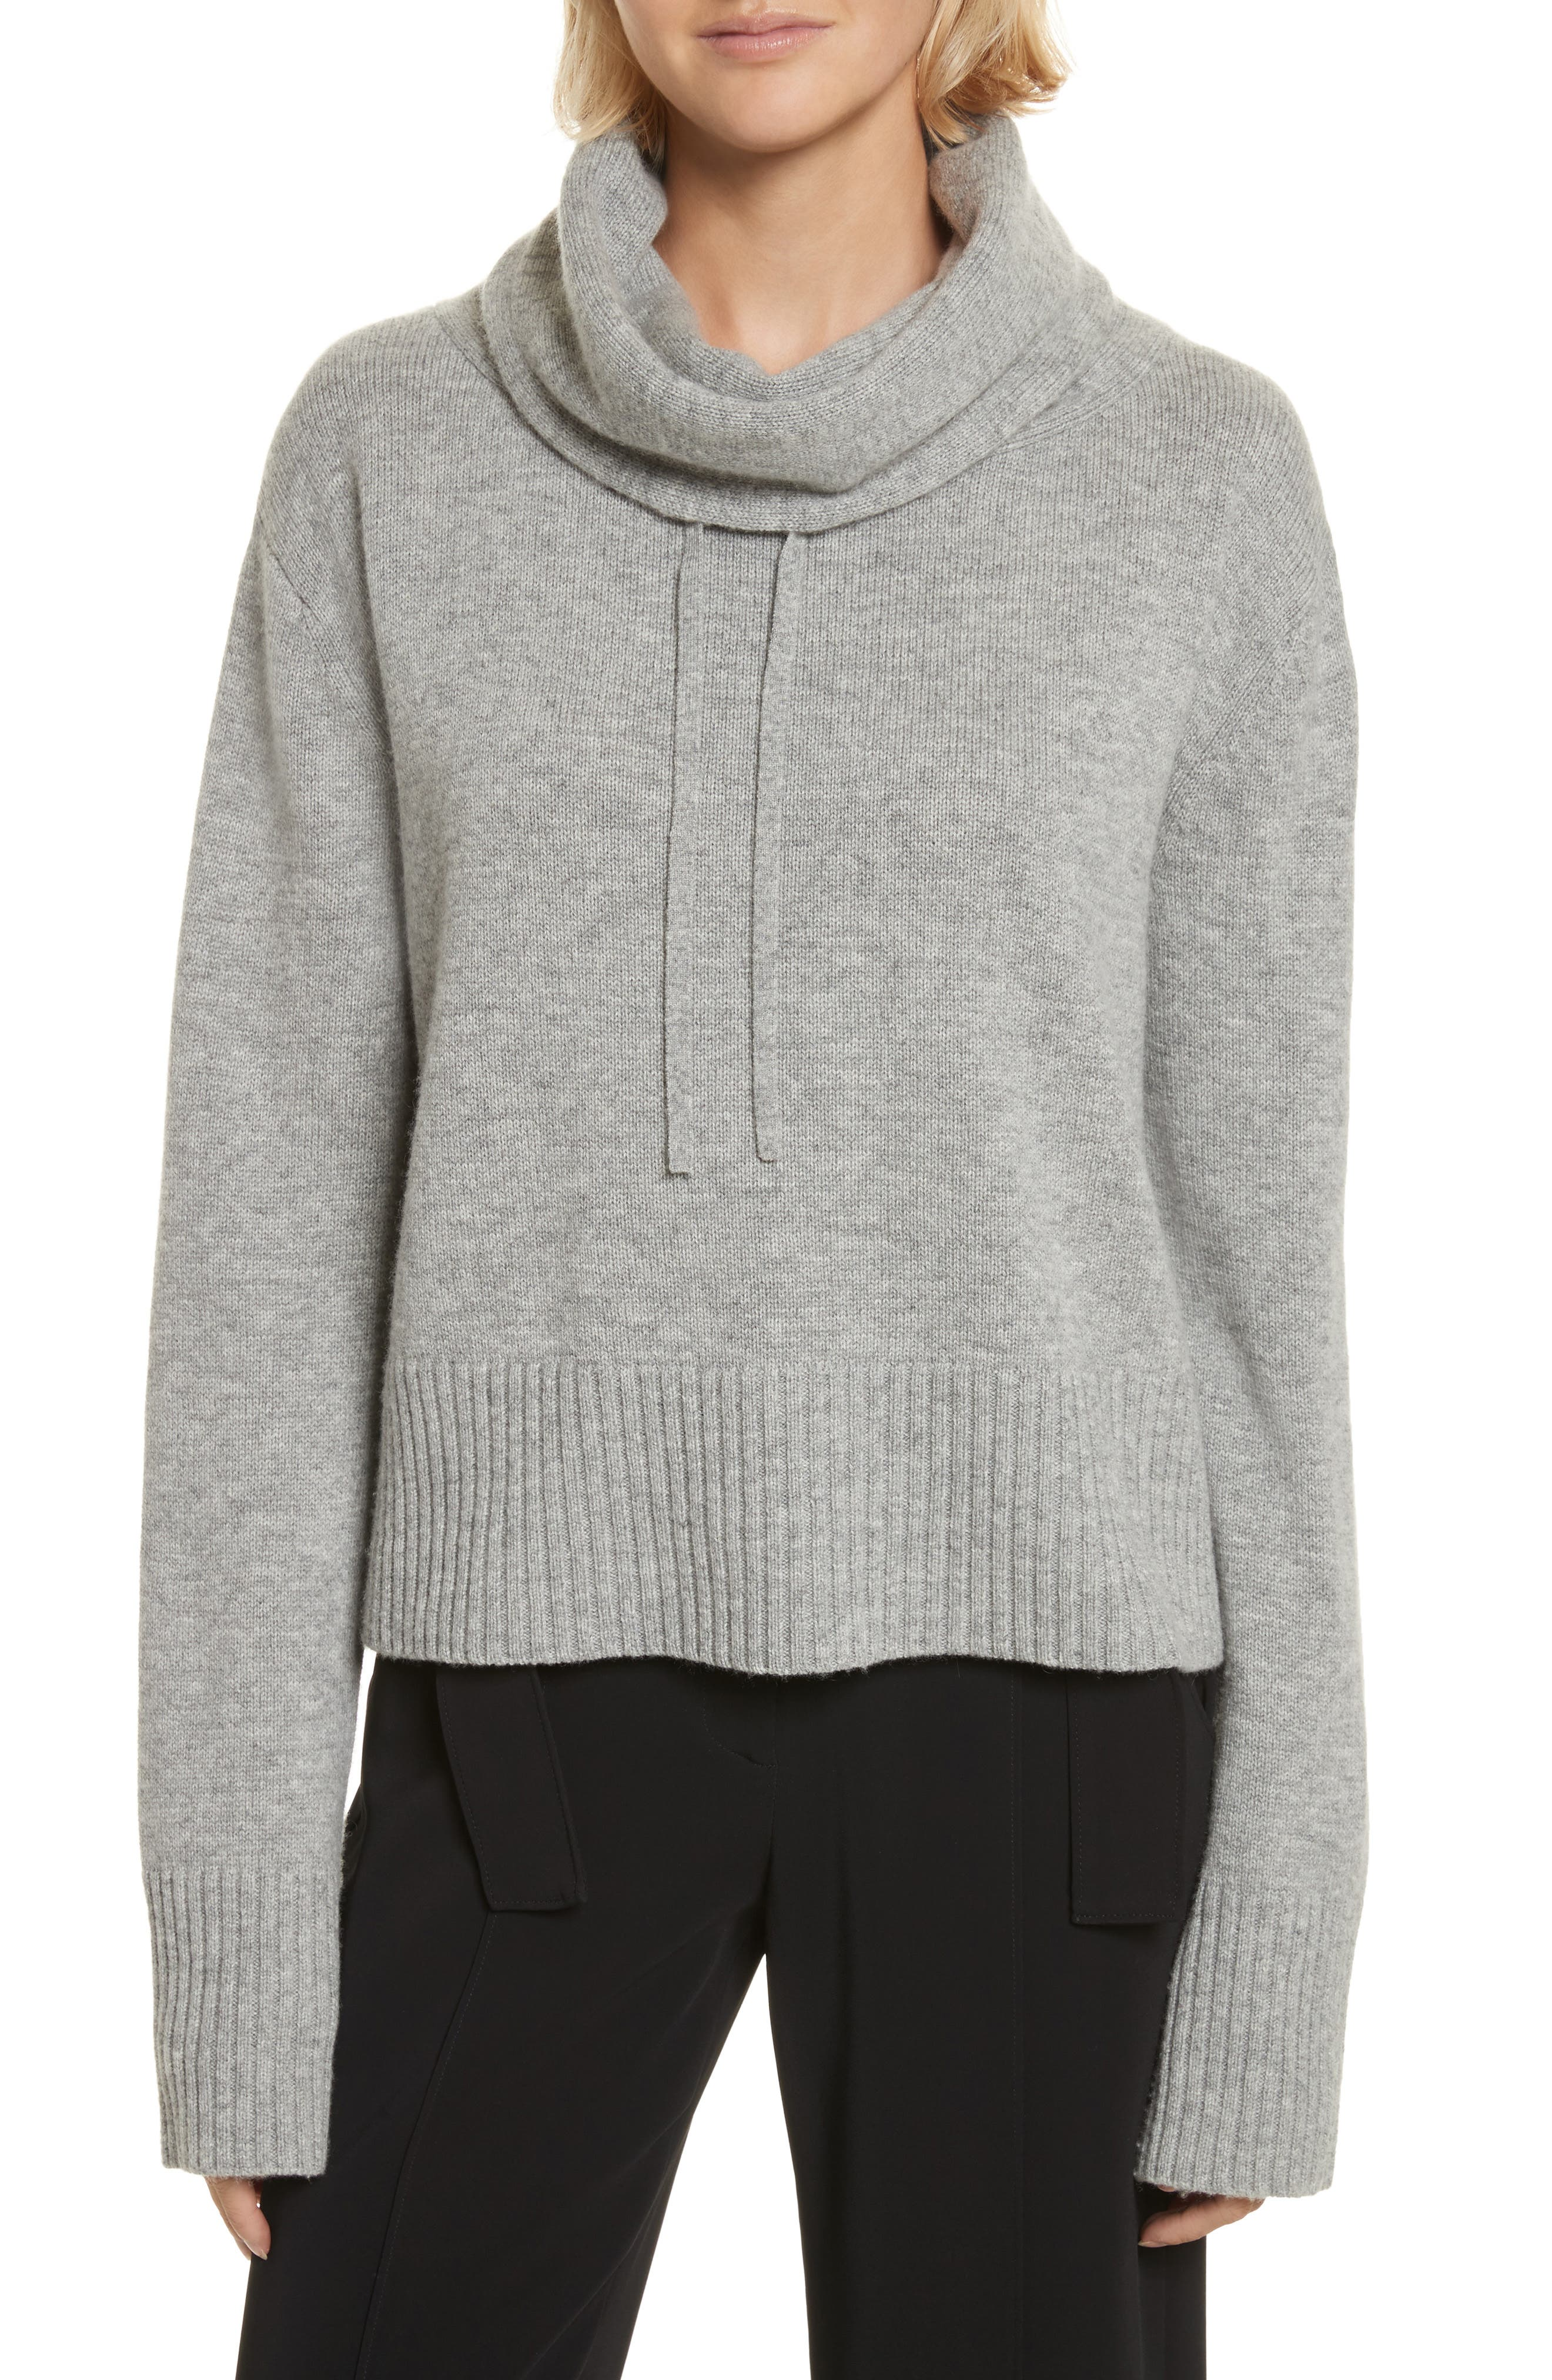 Archie Funnel Neck Wool & Cashmere Sweater,                             Main thumbnail 1, color,                             030